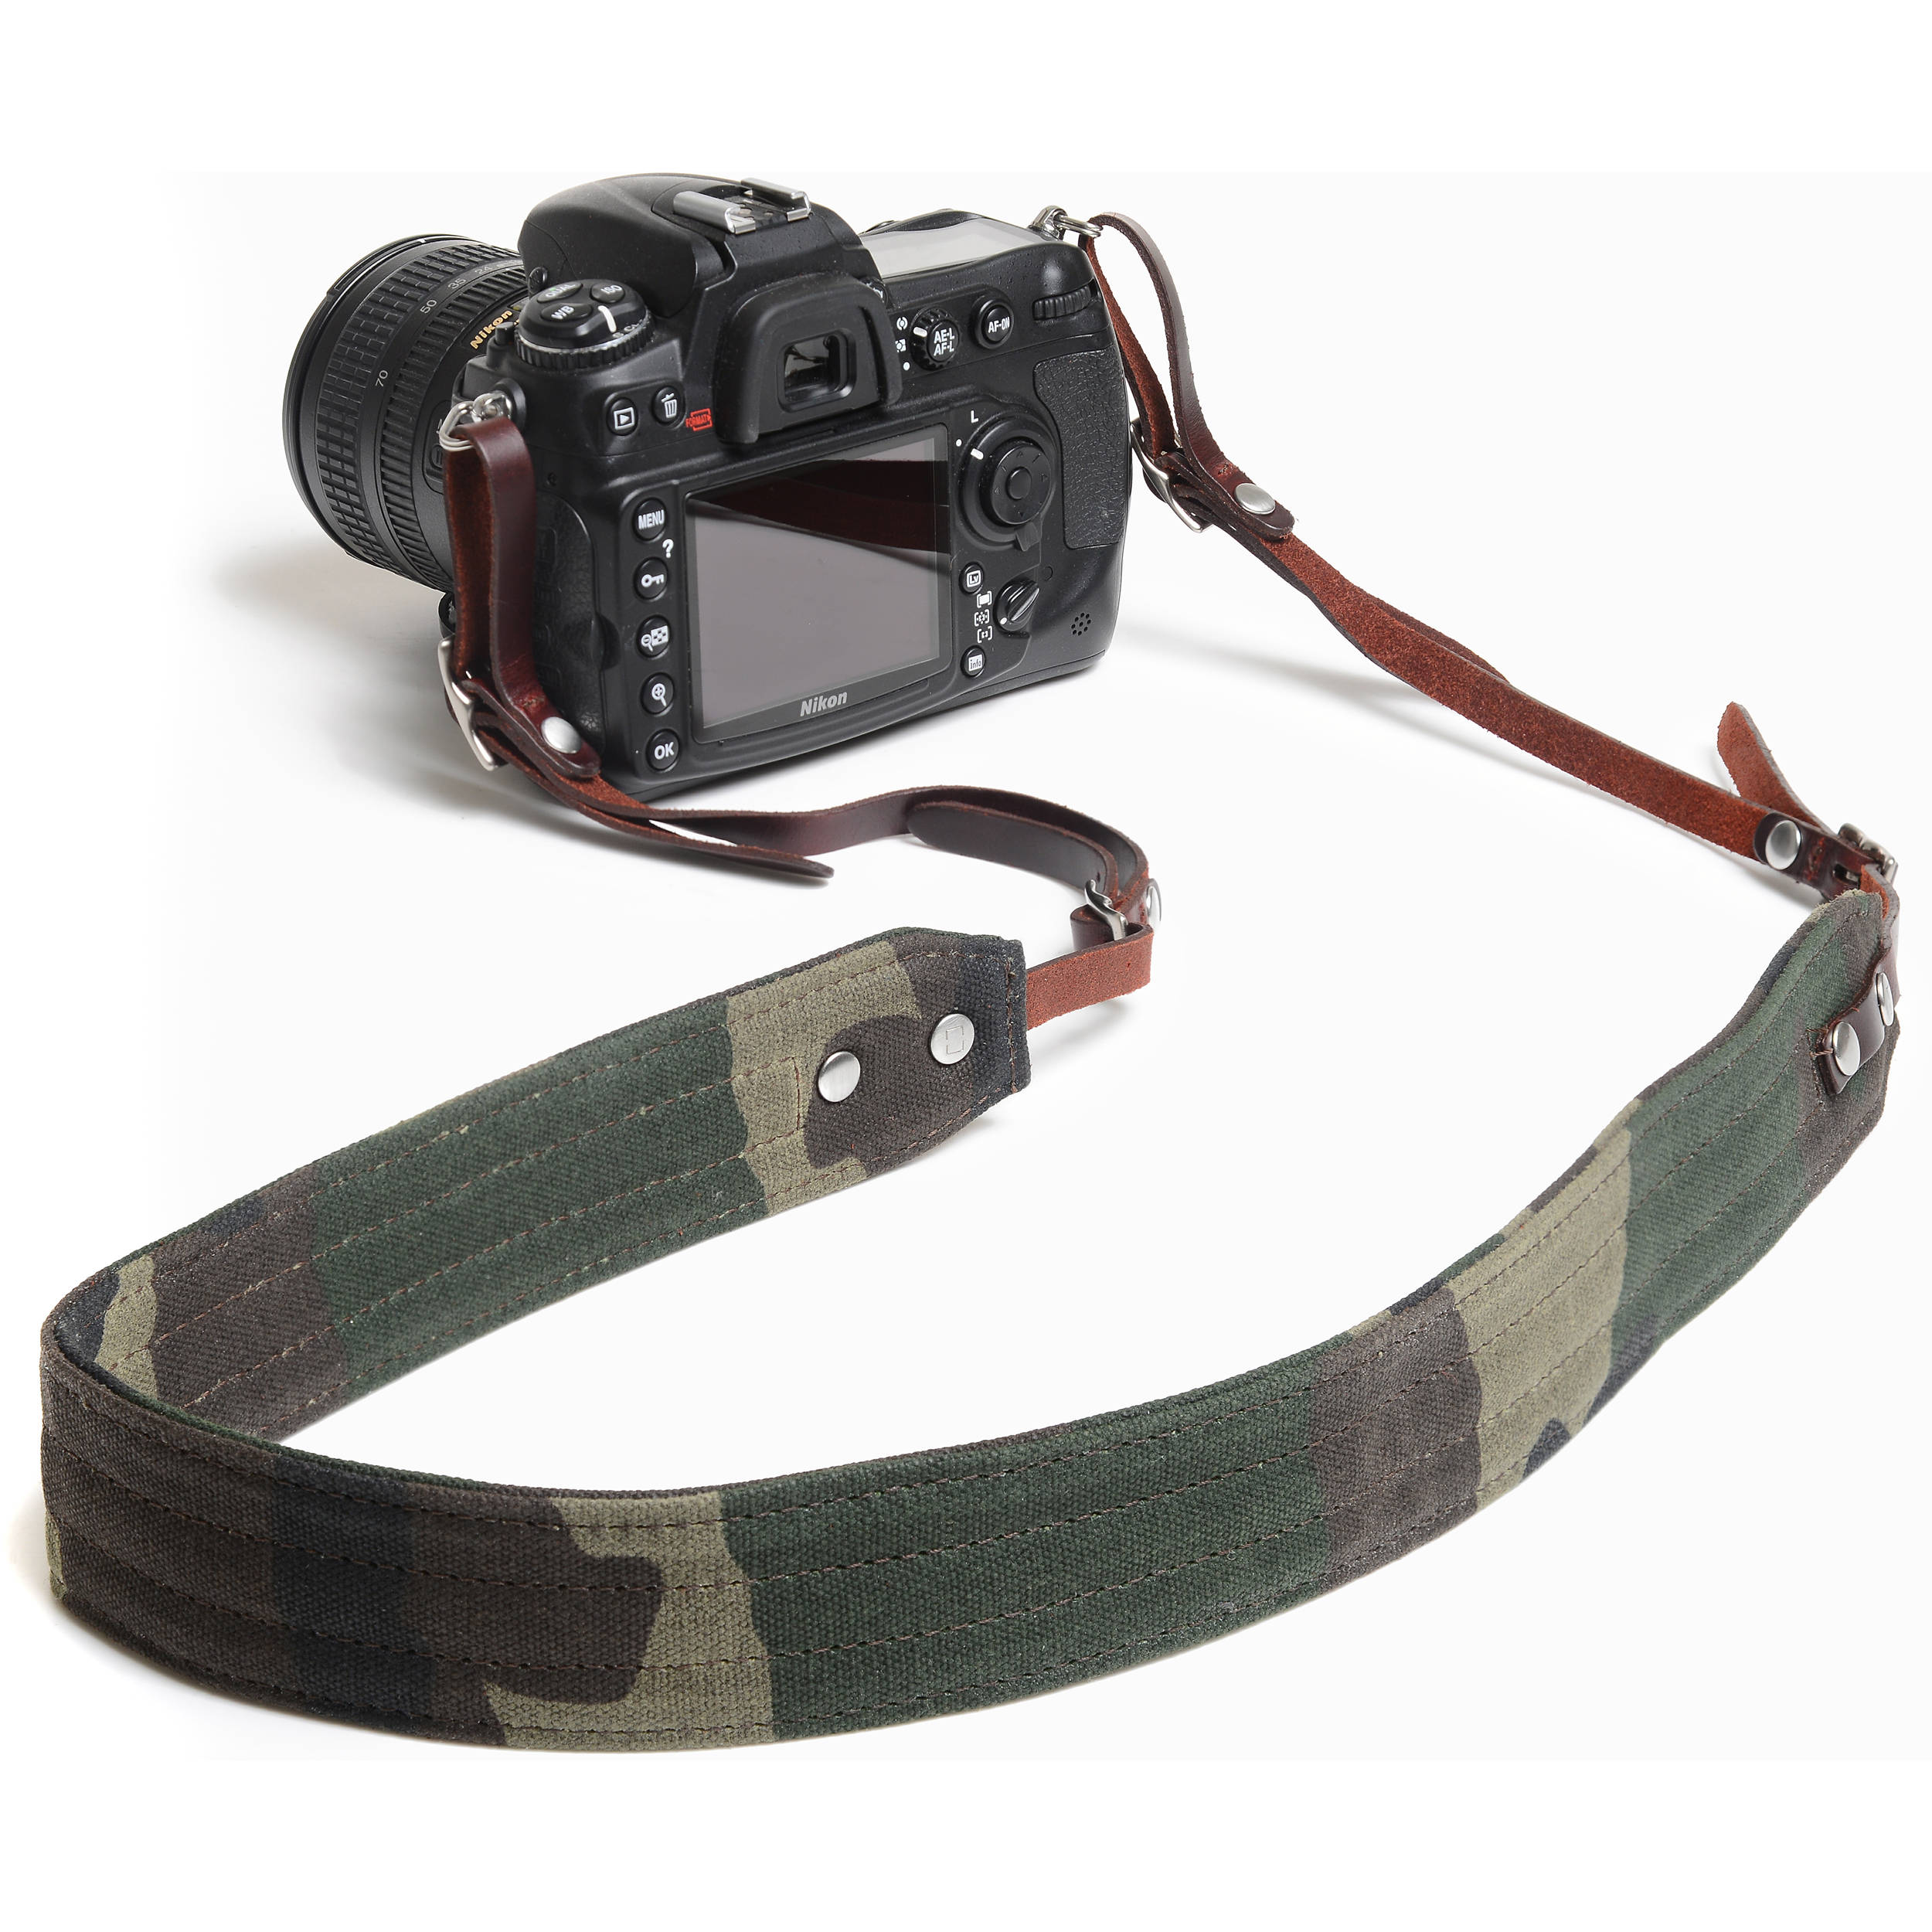 ONA Presidio New Padded Canvas Leather Camera Carrying Neck Strap Black Color